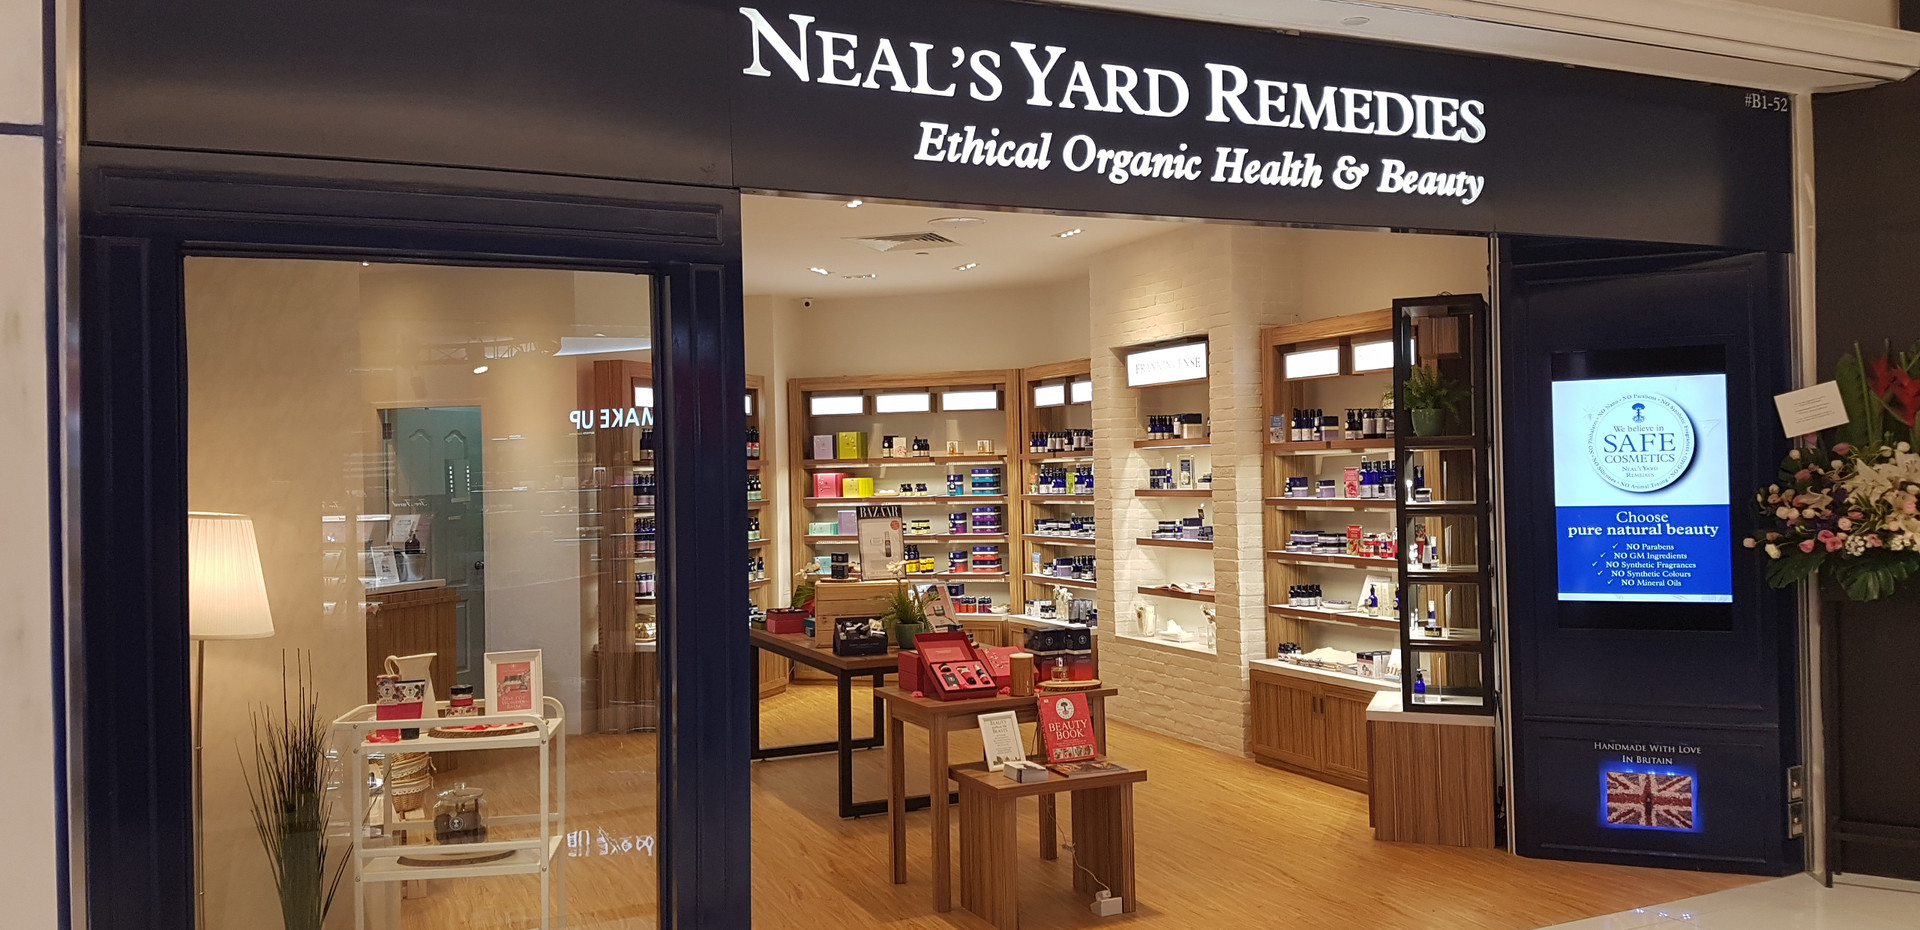 Neal's Yard Remidies